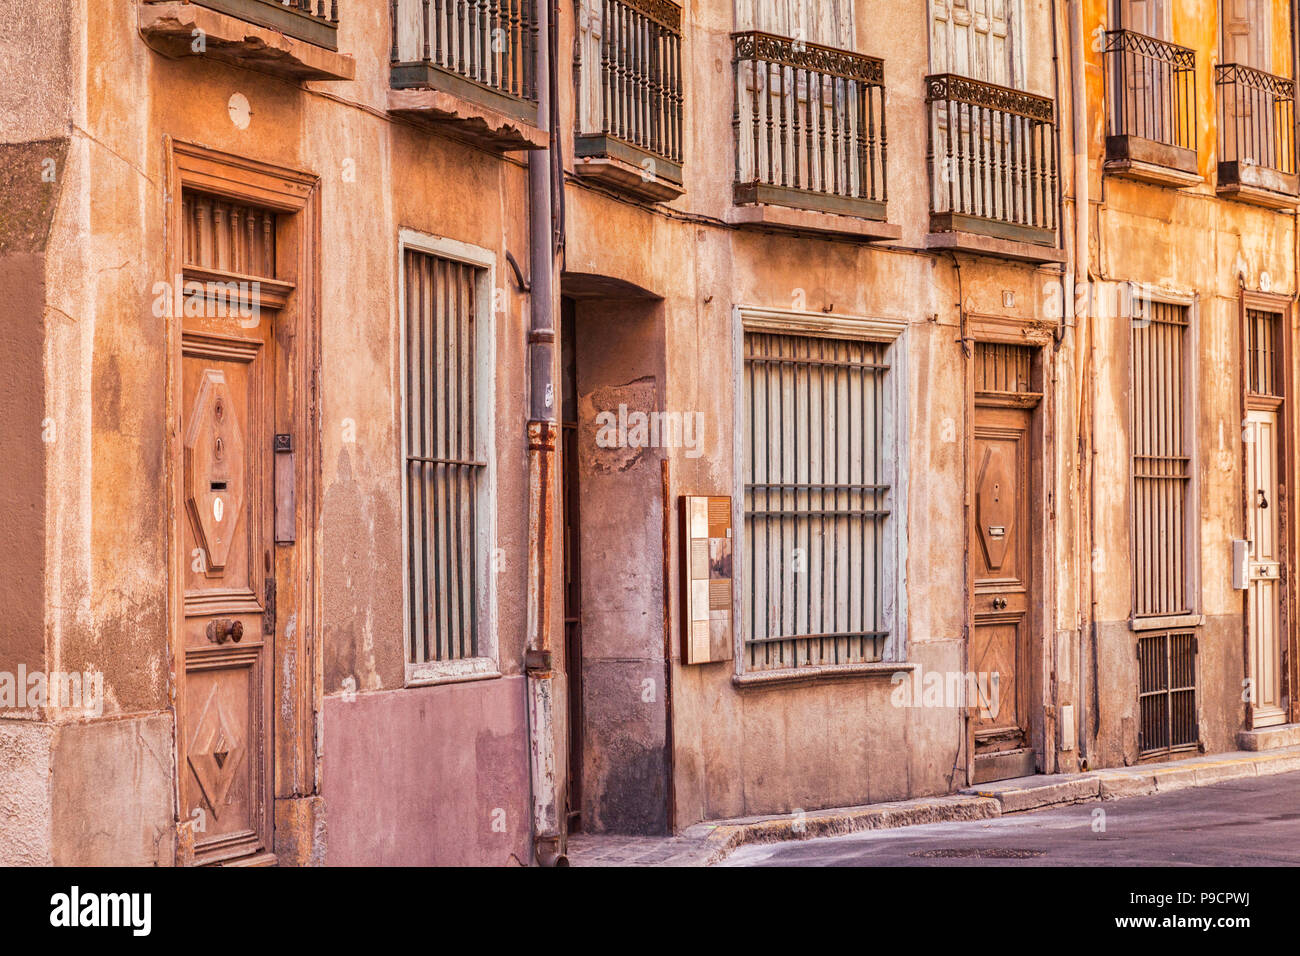 Old apartment buildings in Rue de l'Horloge, Perpignan, Languedoc-Roussillon, Pyrenees-Orientales, France. - Stock Image